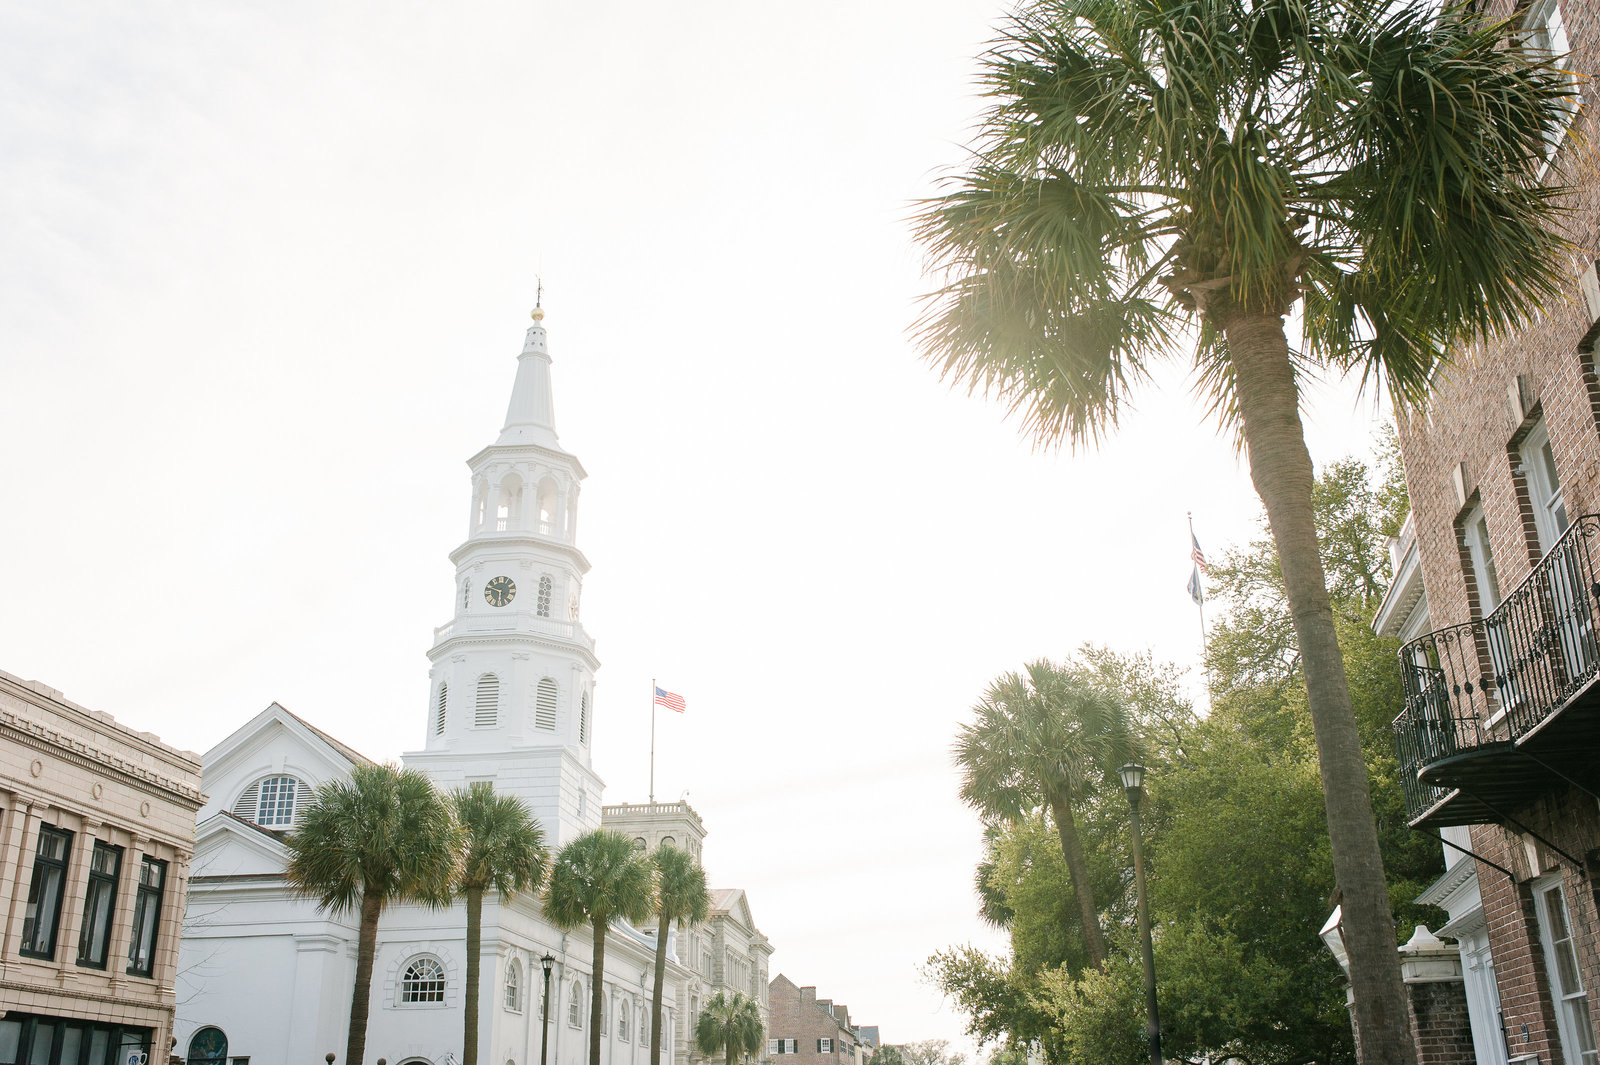 LowCountryChapel